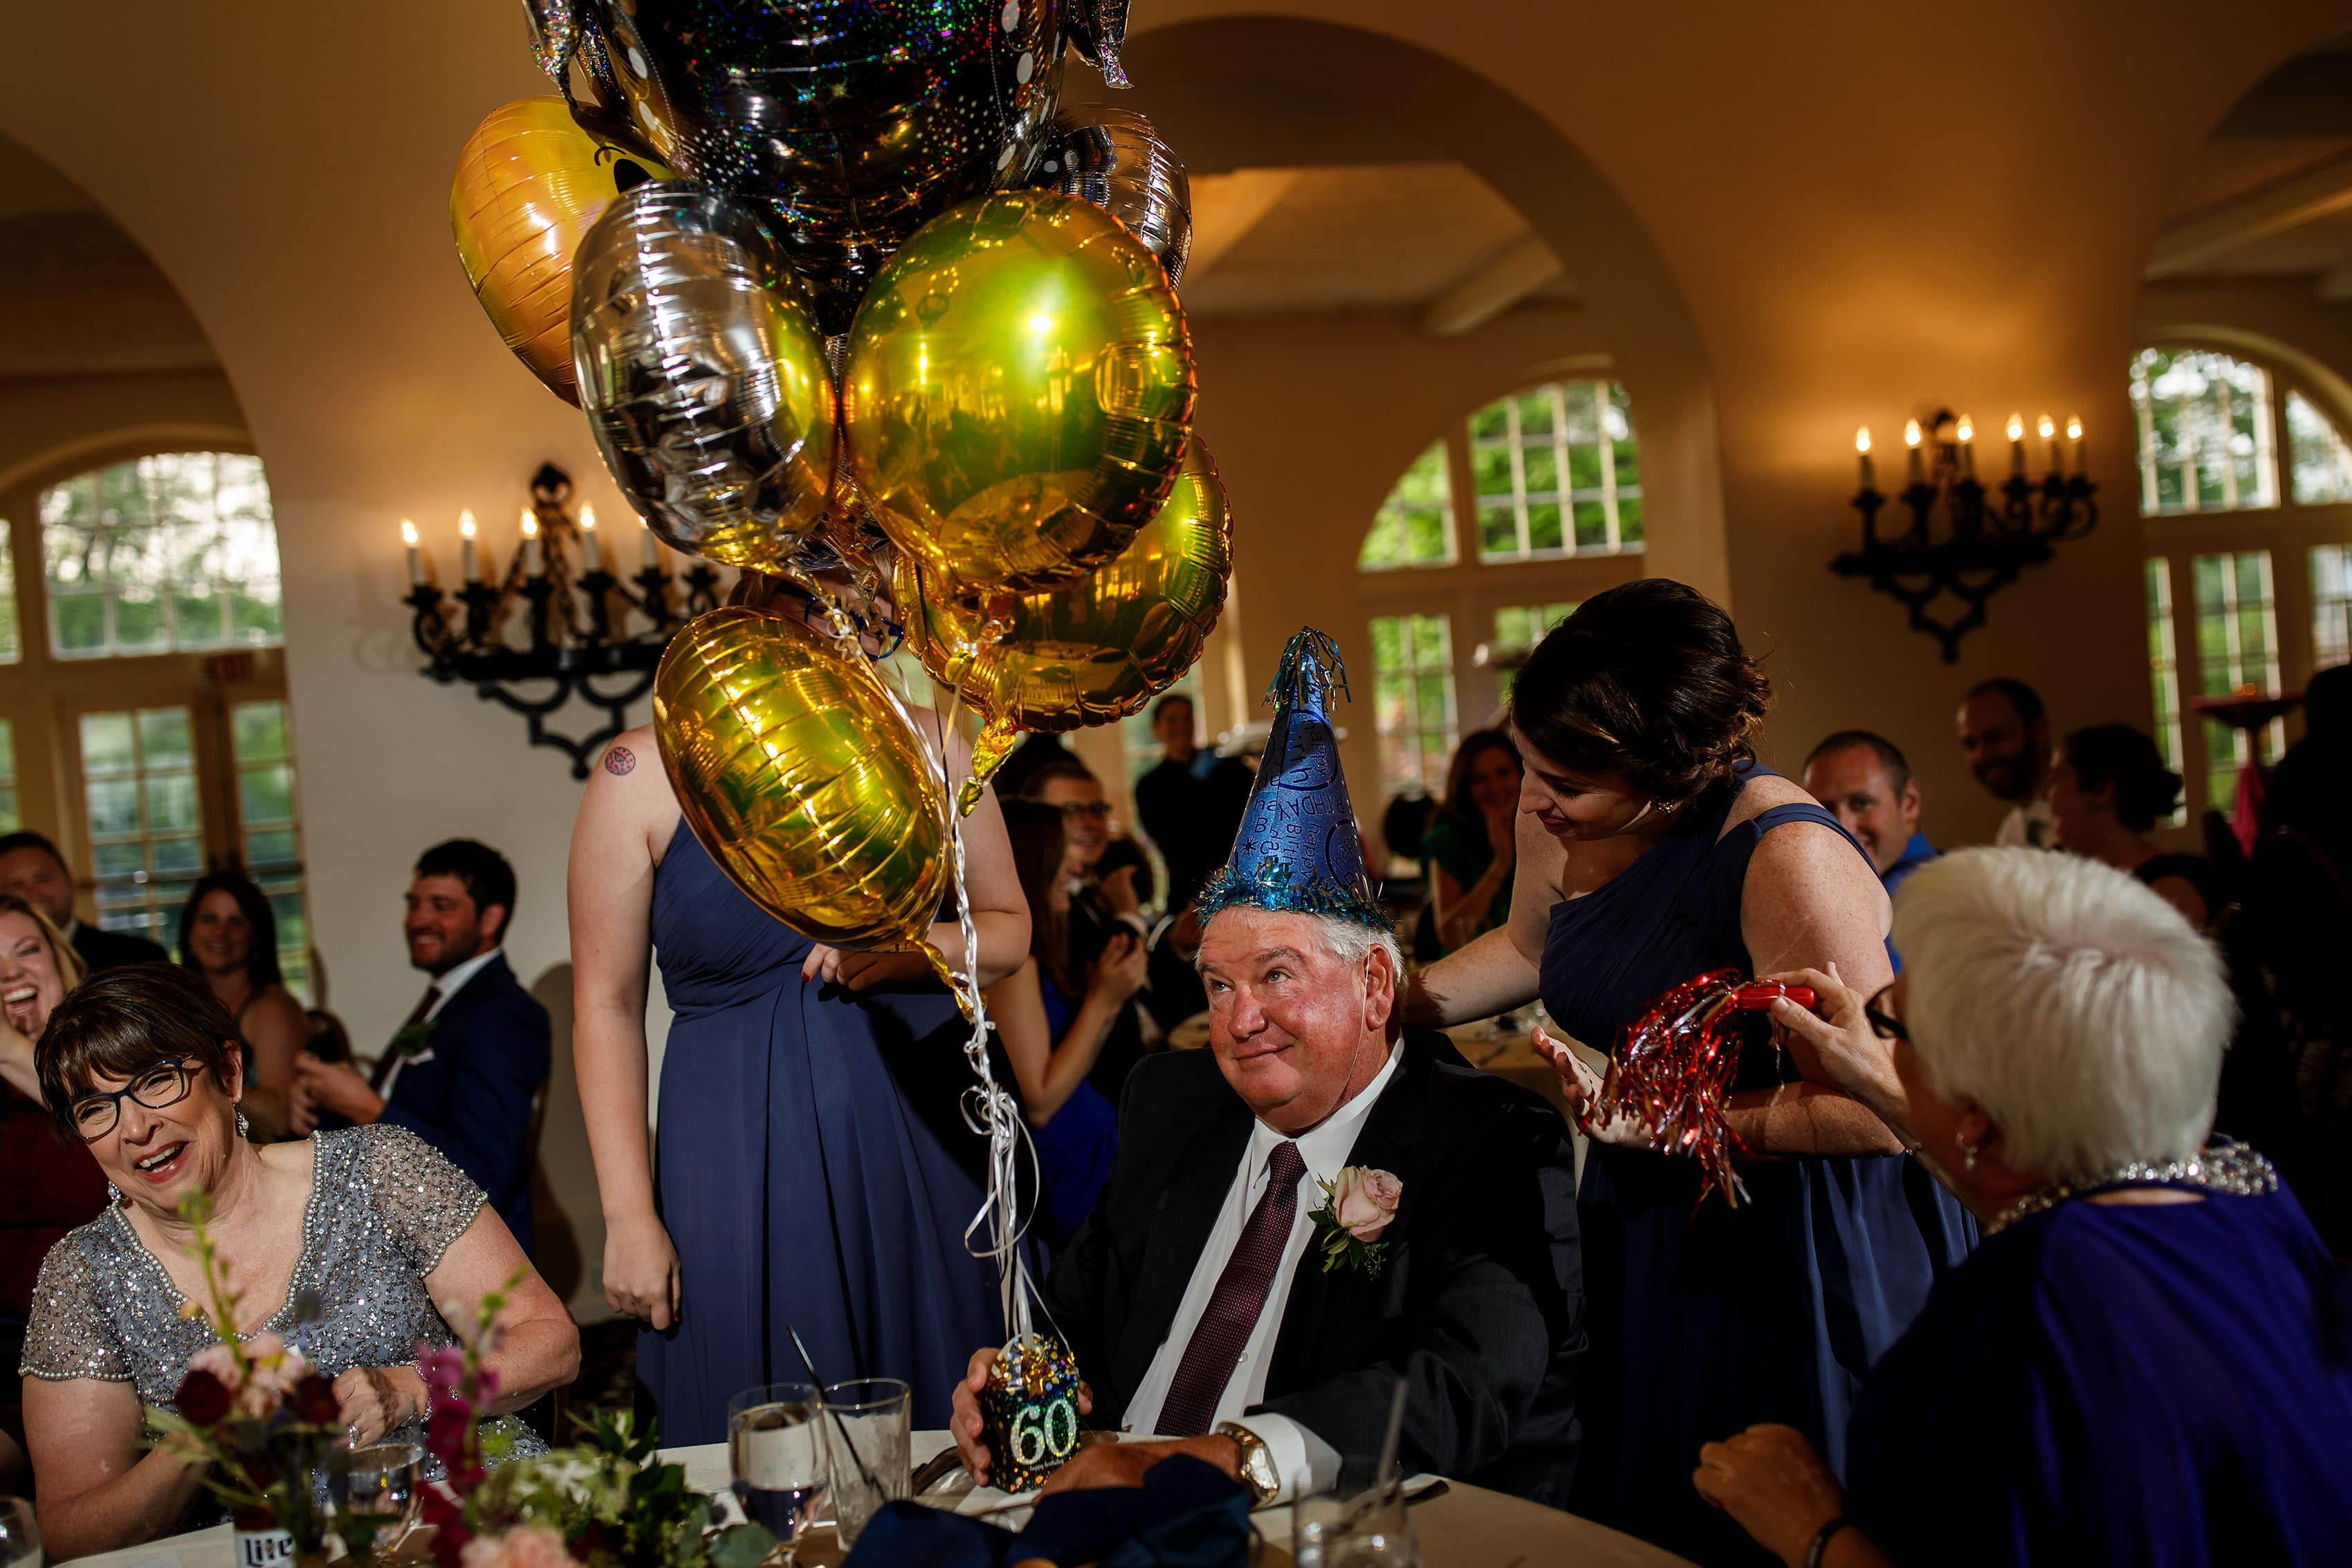 The father of the bride celebrates his birthday at Ravisloe Country Club